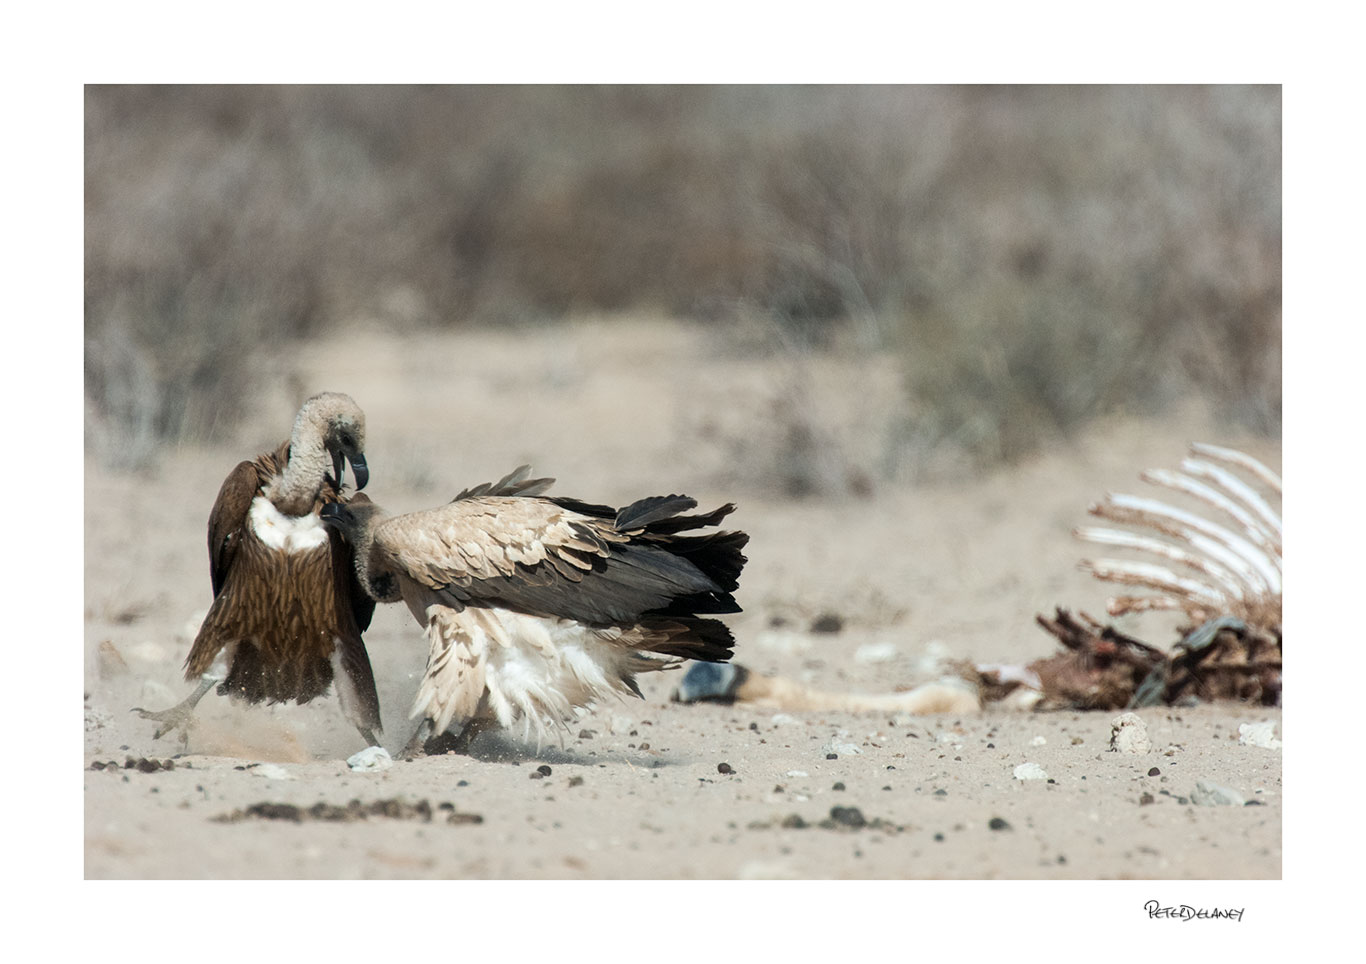 White-backed Vultures fight over carcass